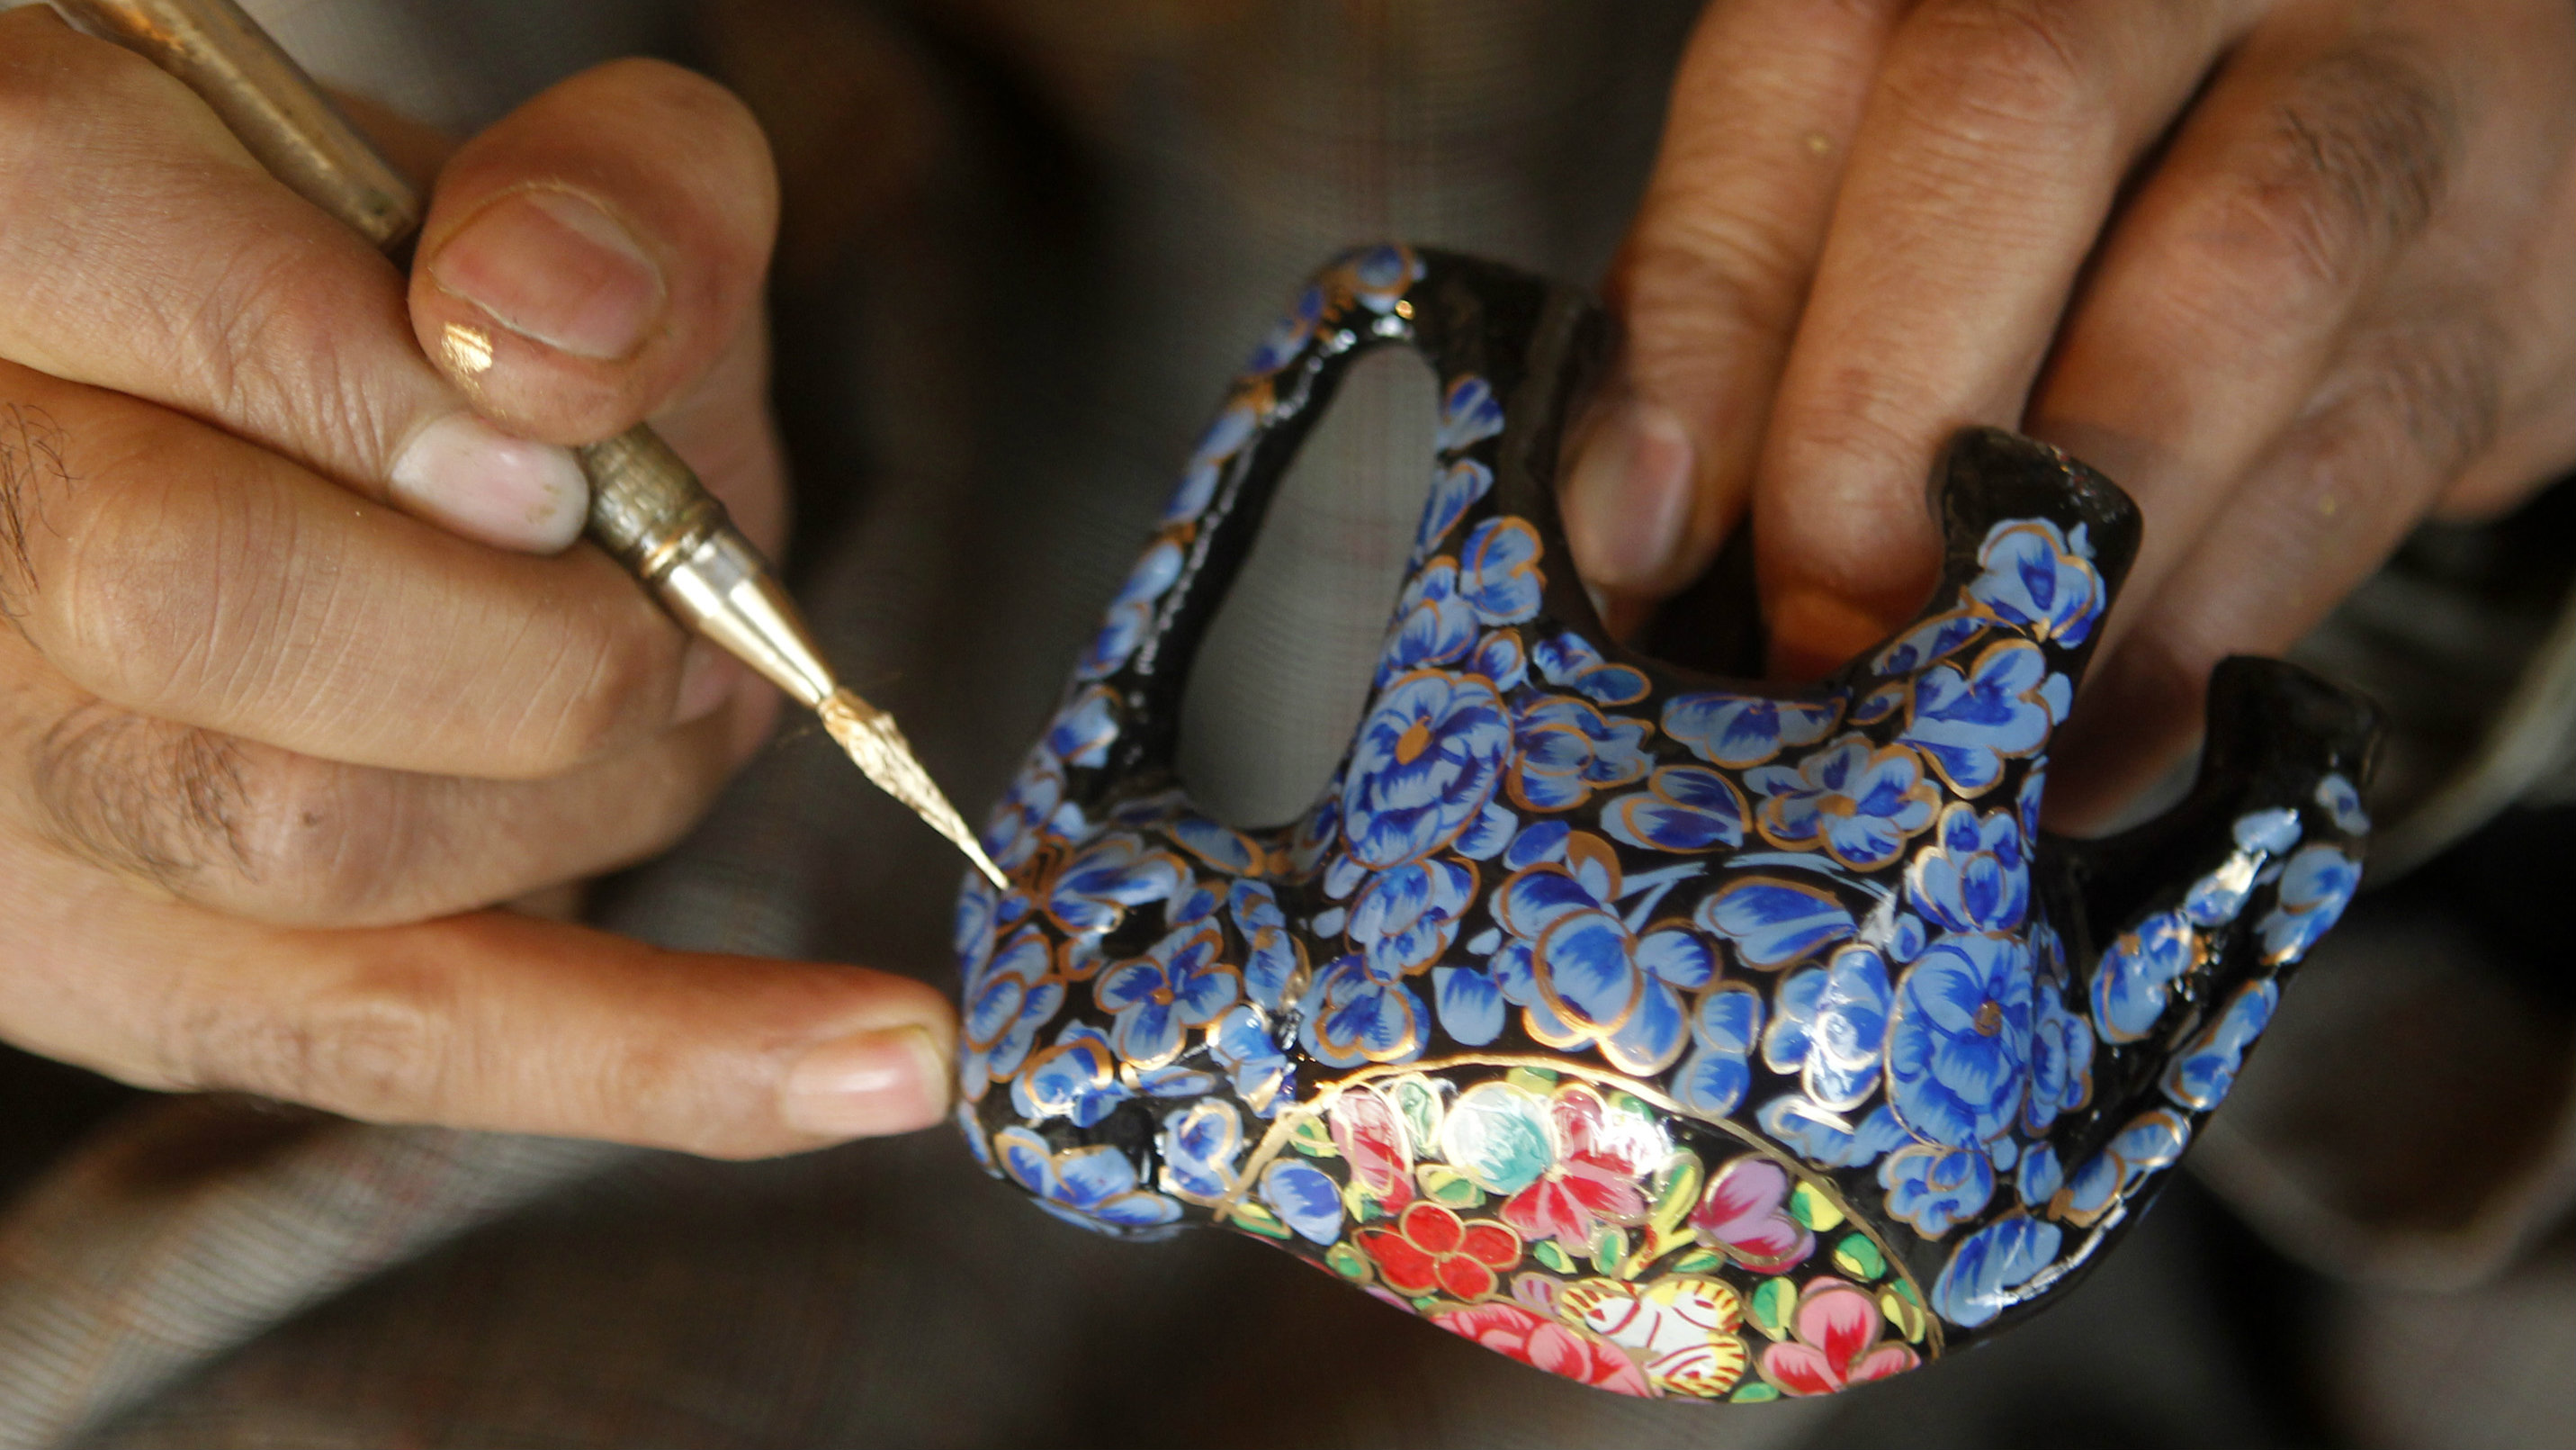 A Kashmiri craftsman paints a papier-mache decoration in Srinagar December 8, 2010. A 15th century art form, the unique craft was favoured by Mughal emperors of the era and involves the use of paper pulp to create artefacts which are then painted by expert craftsmen. REUTERS/Fayaz Kabli (INDIAN-ADMINISTERED KASHMIR - Tags: SOCIETY)